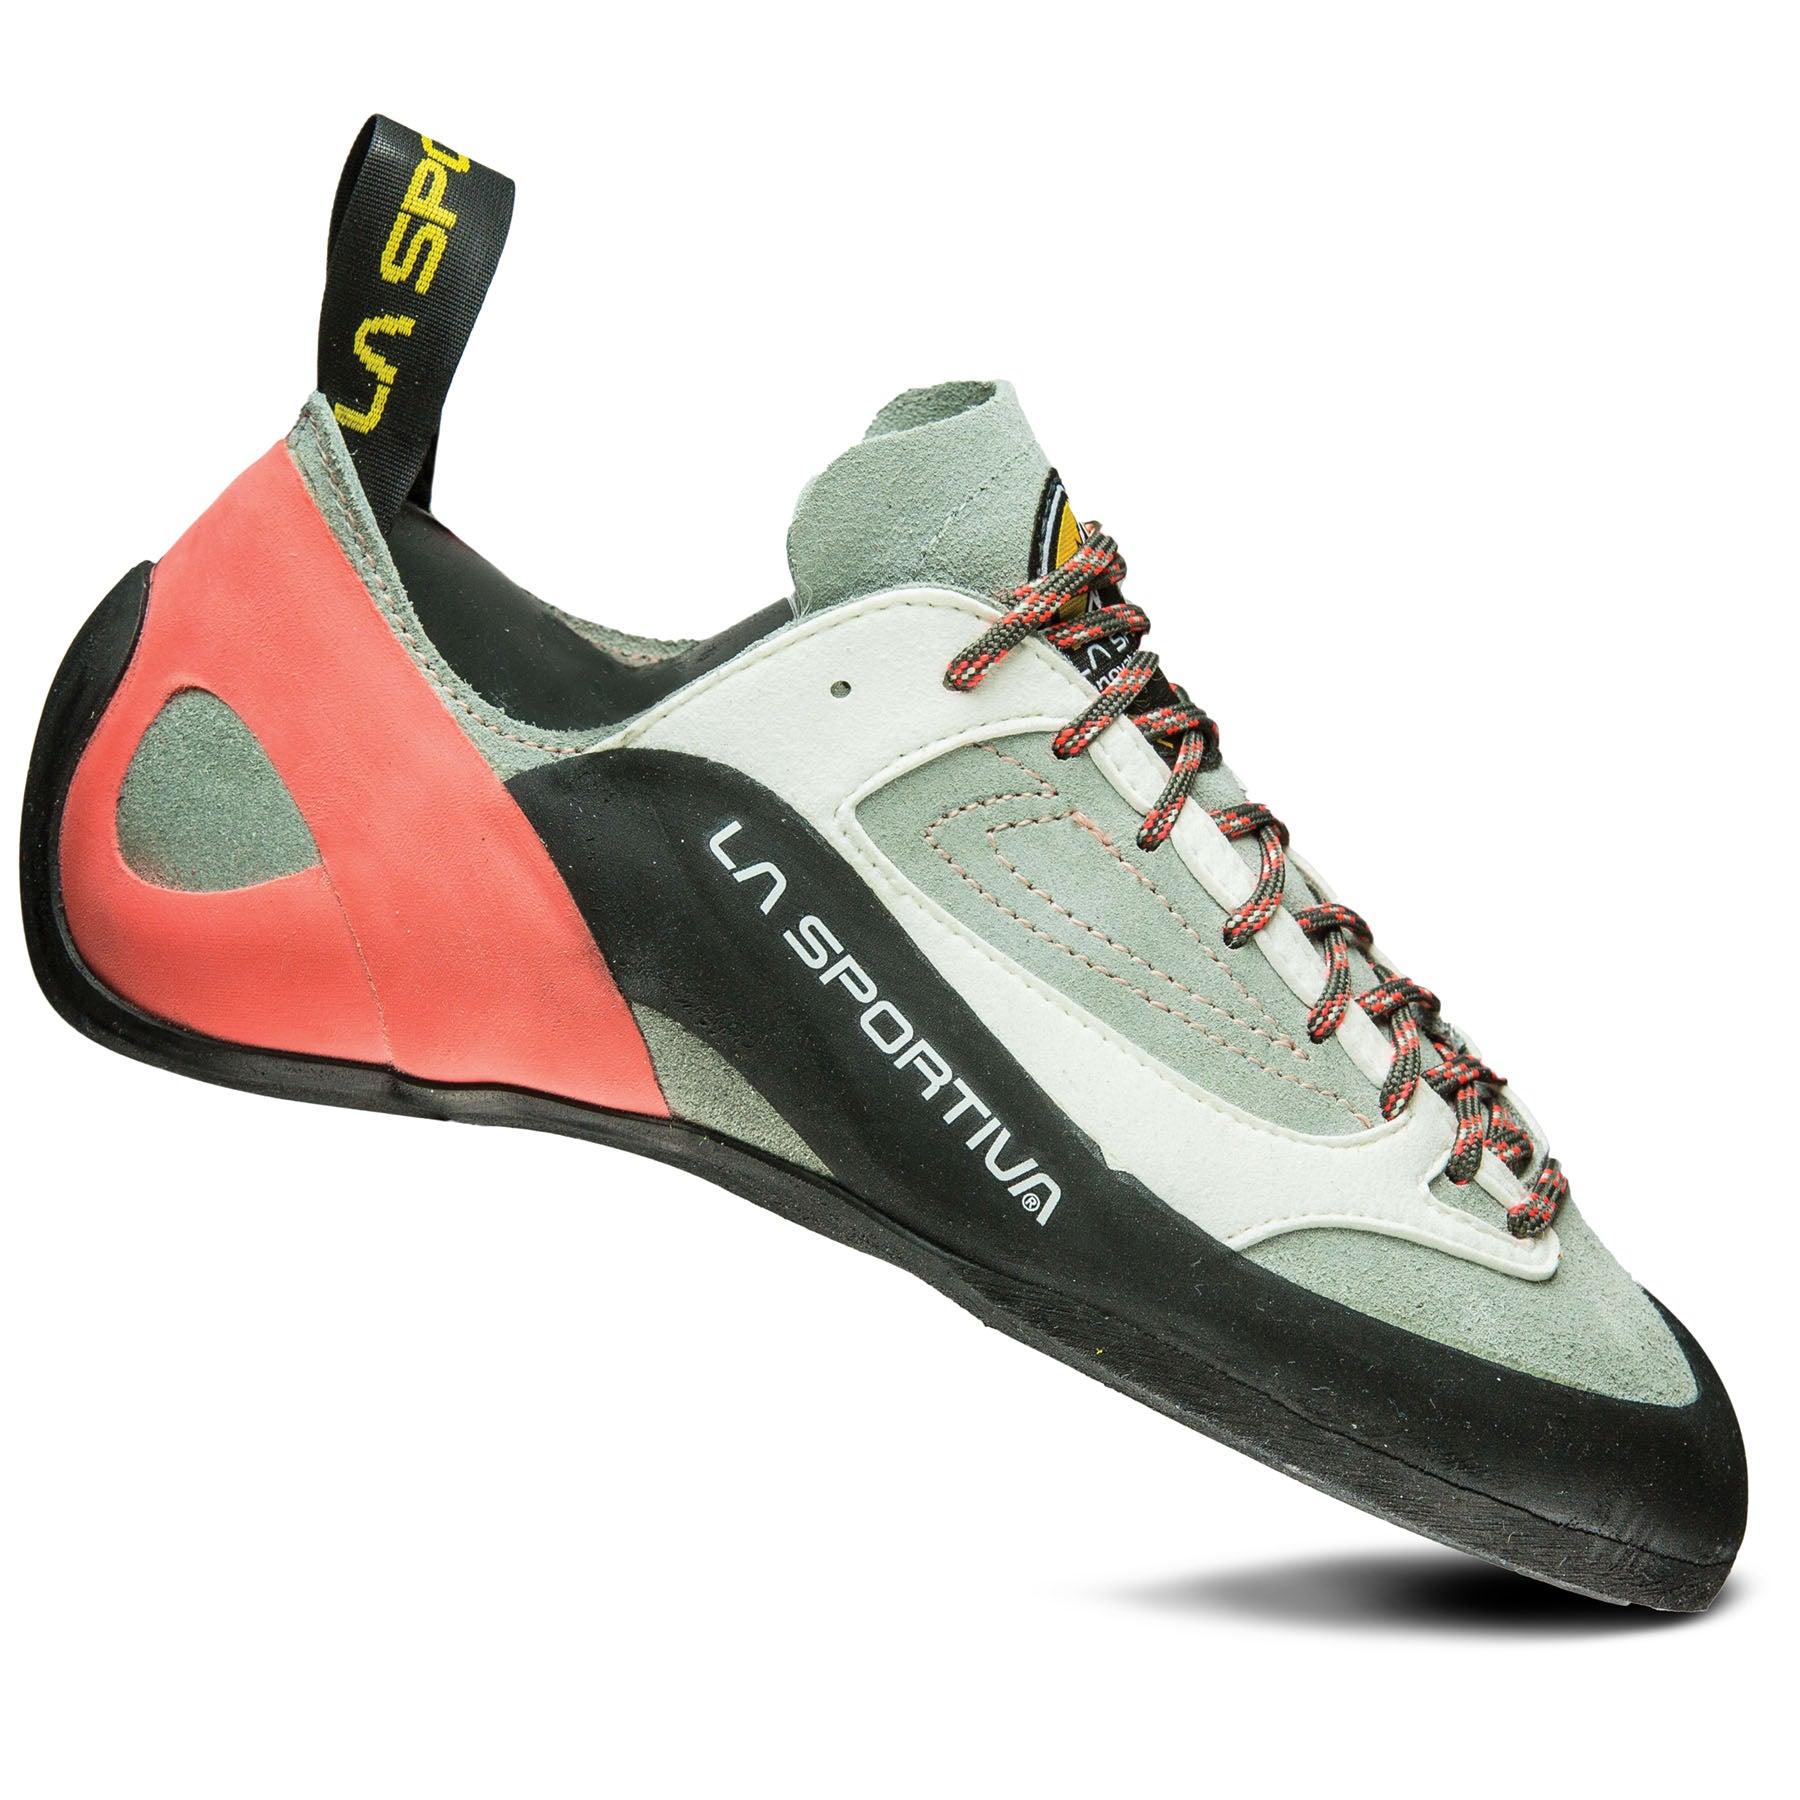 side view of the women's finale rock climbing shoe